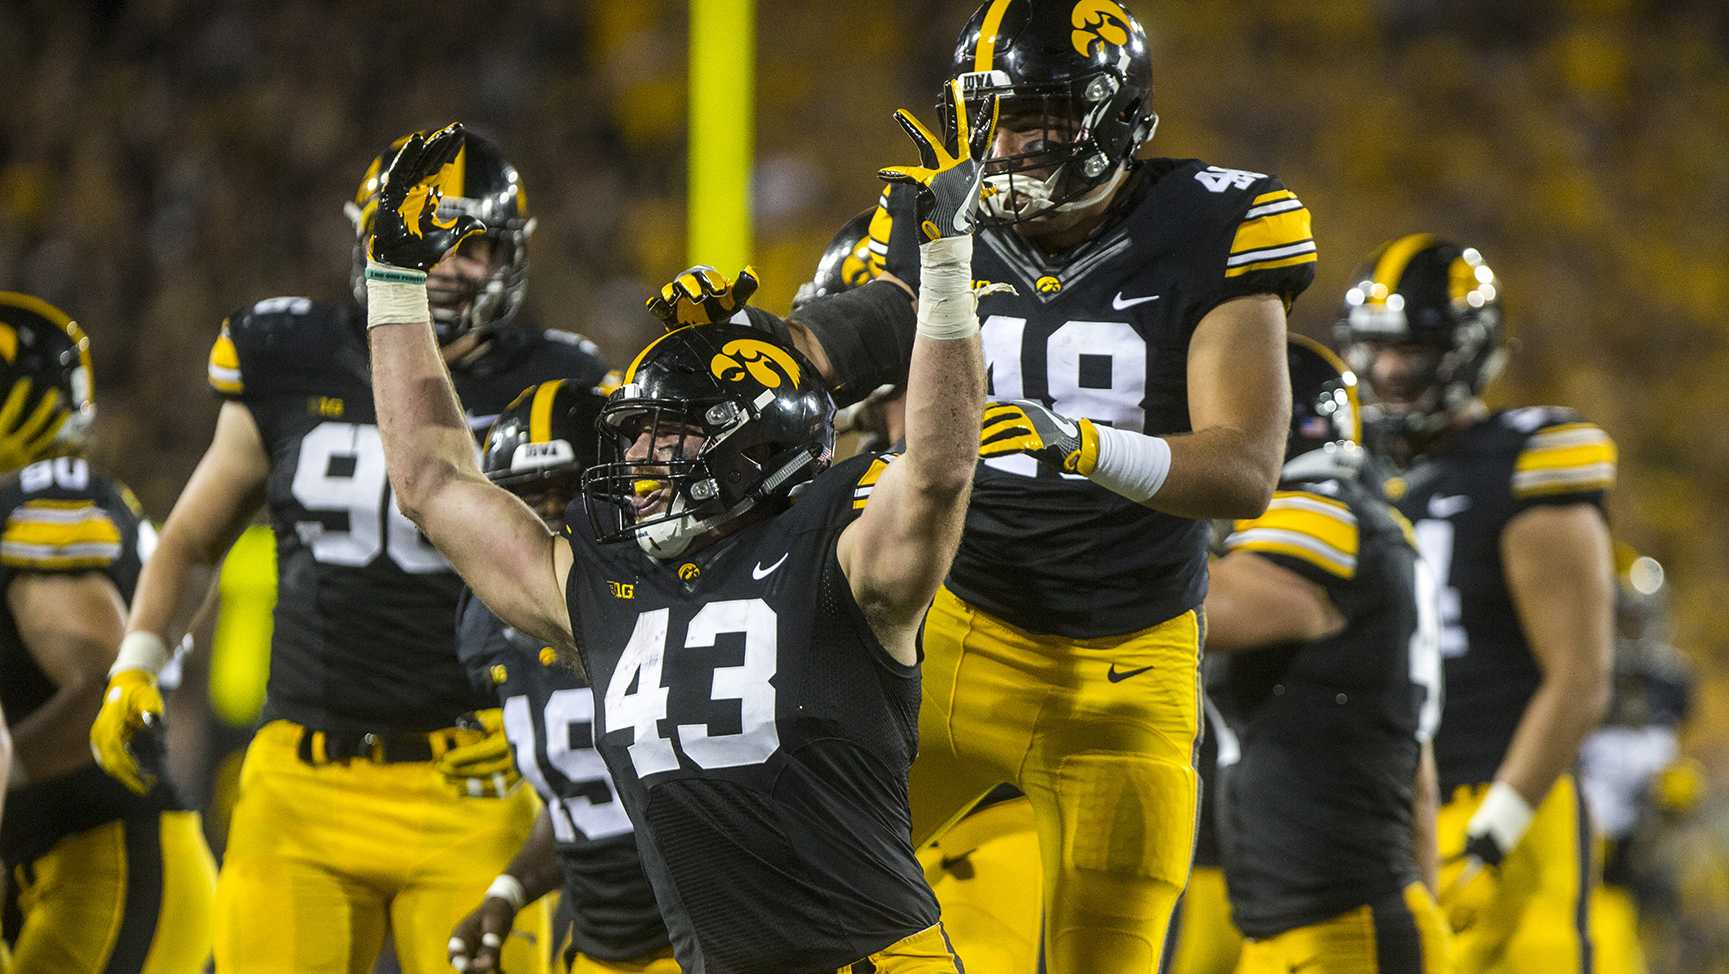 Iowa line backer Josey Jewell celebrates an interception during the game between Iowa and Penn State at Kinnick Stadium on Saturday, Sept. 23, 2017. Both teams are going into the game undefeated with records of 3-0. The Nittany Lions defeated the Hawkeyes 21-19. (Ben Smith/The Daily Iowan)